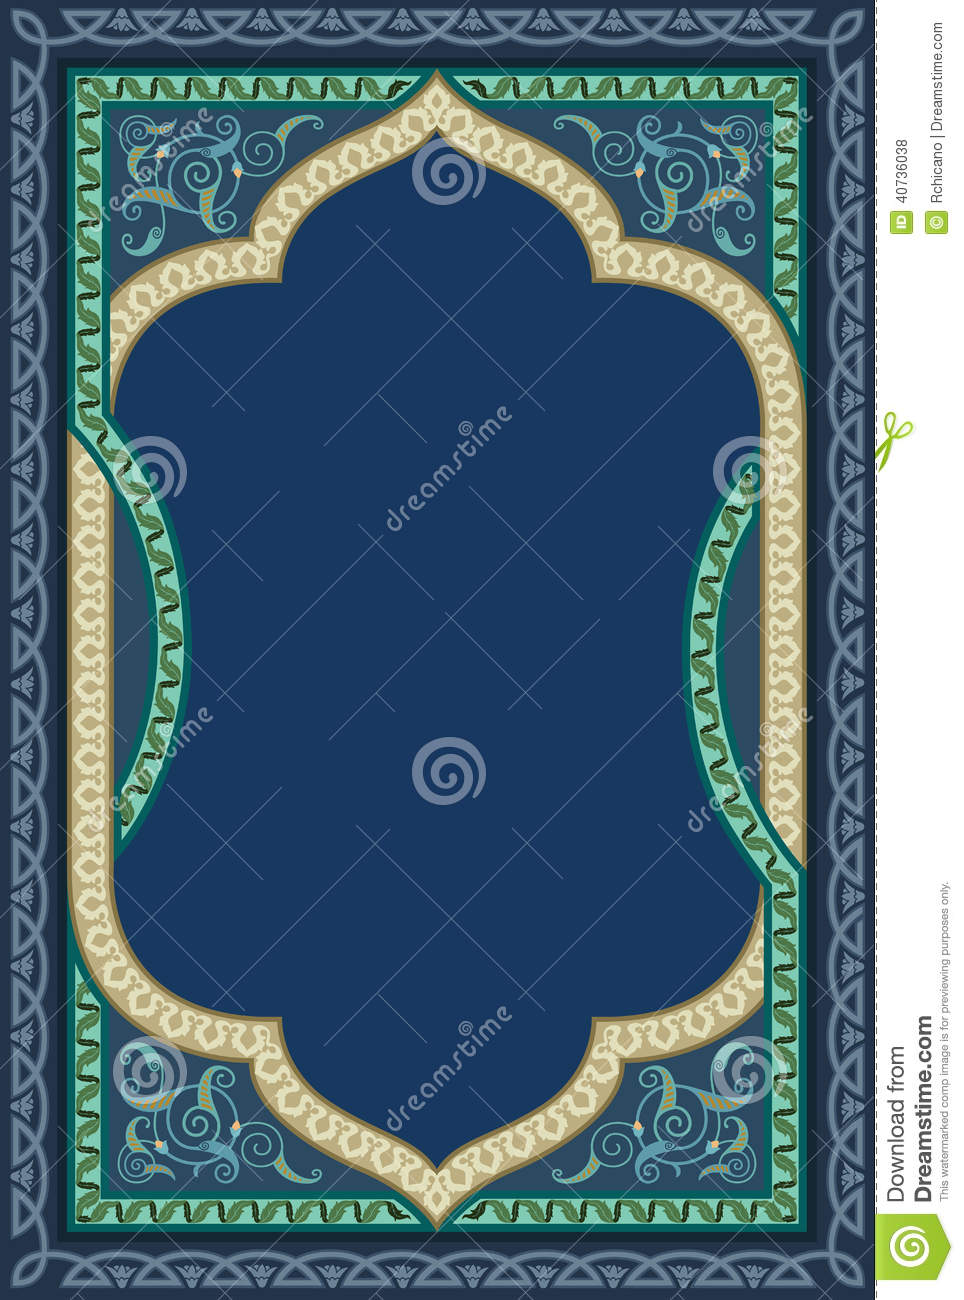 Islamic decorative art